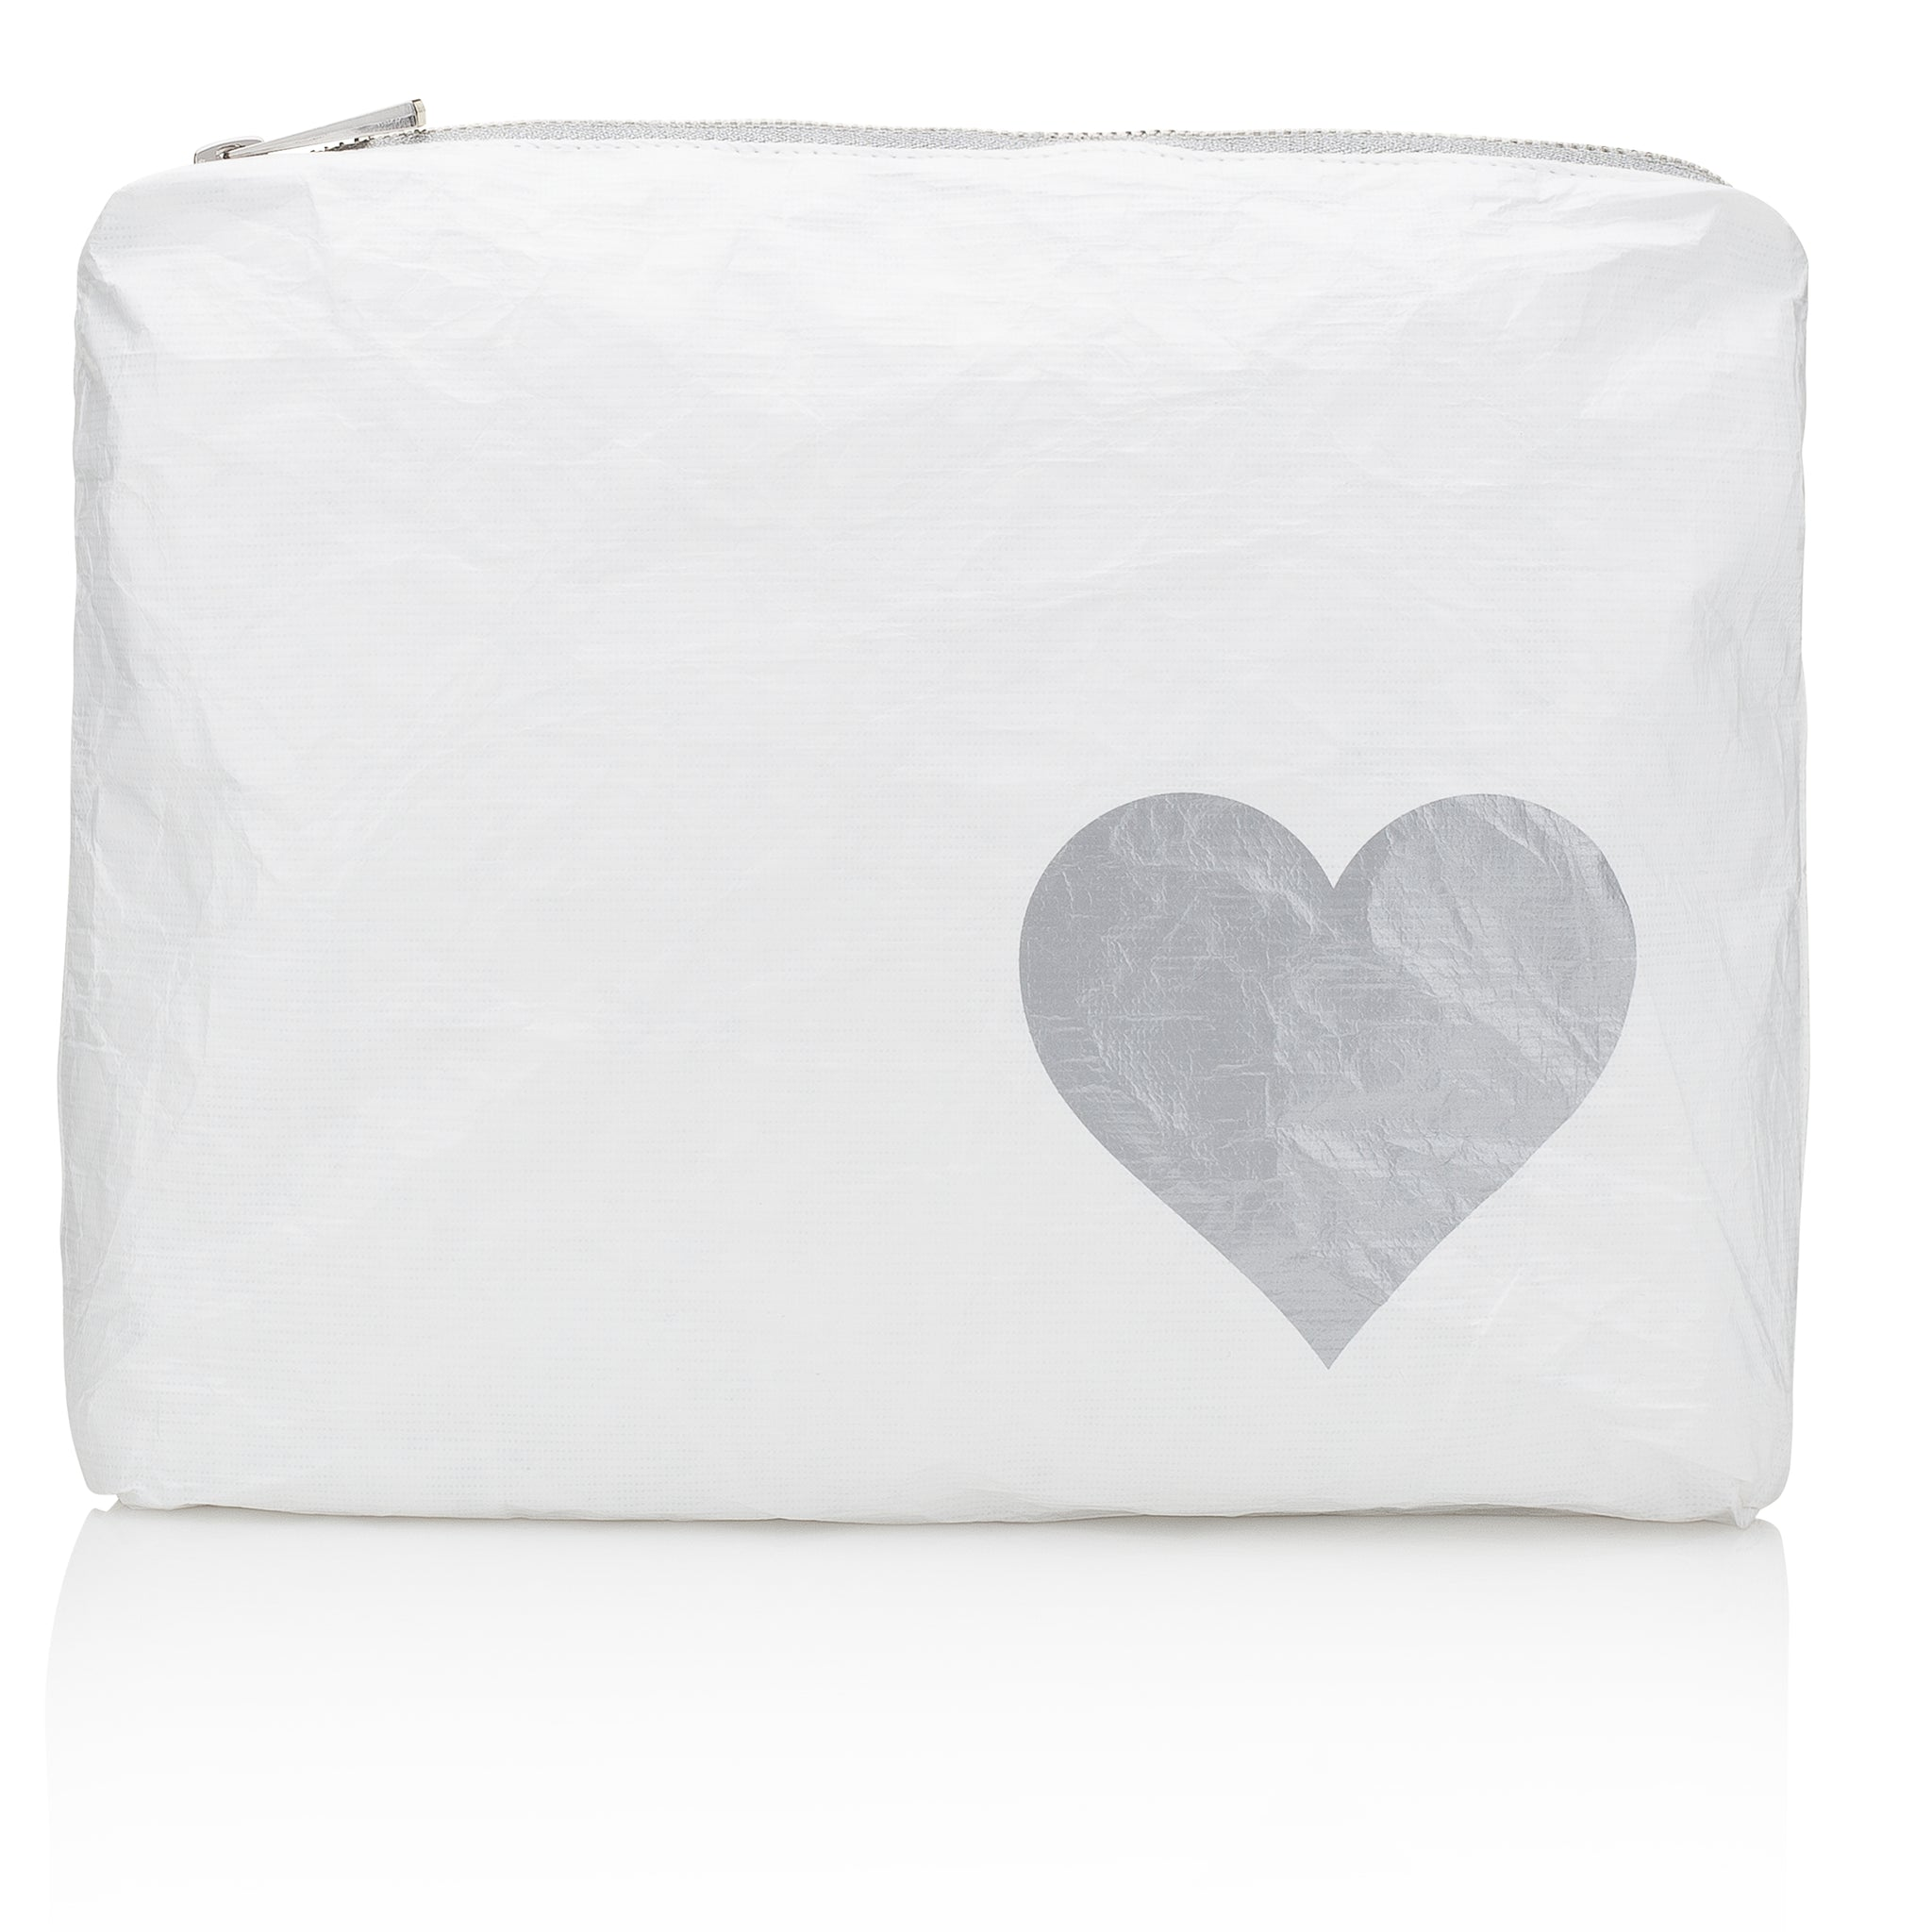 Makeup Pouch - Travel Pack - Toiletry Bag - Medium Pack - White with Silver Heart